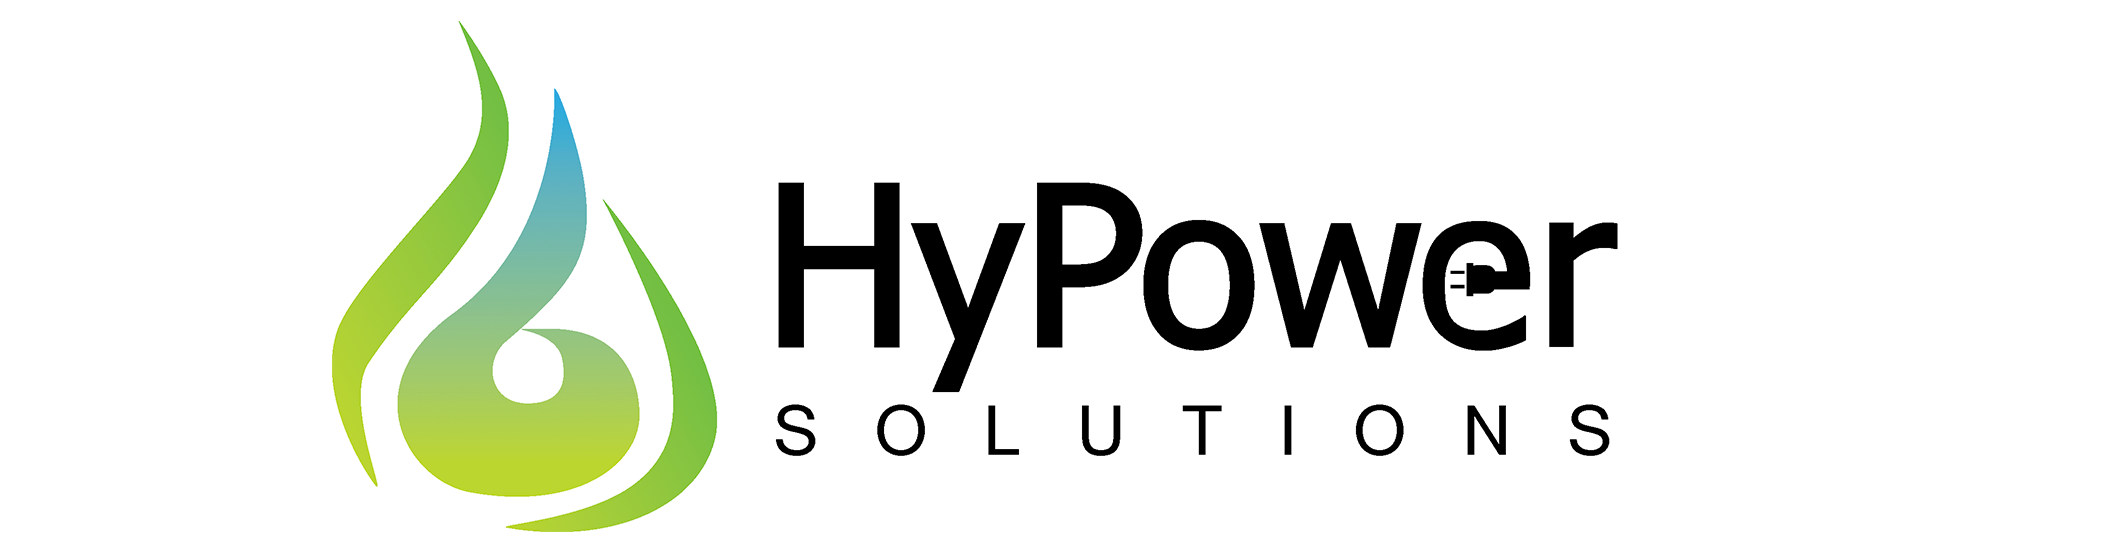 hypower_resized.png